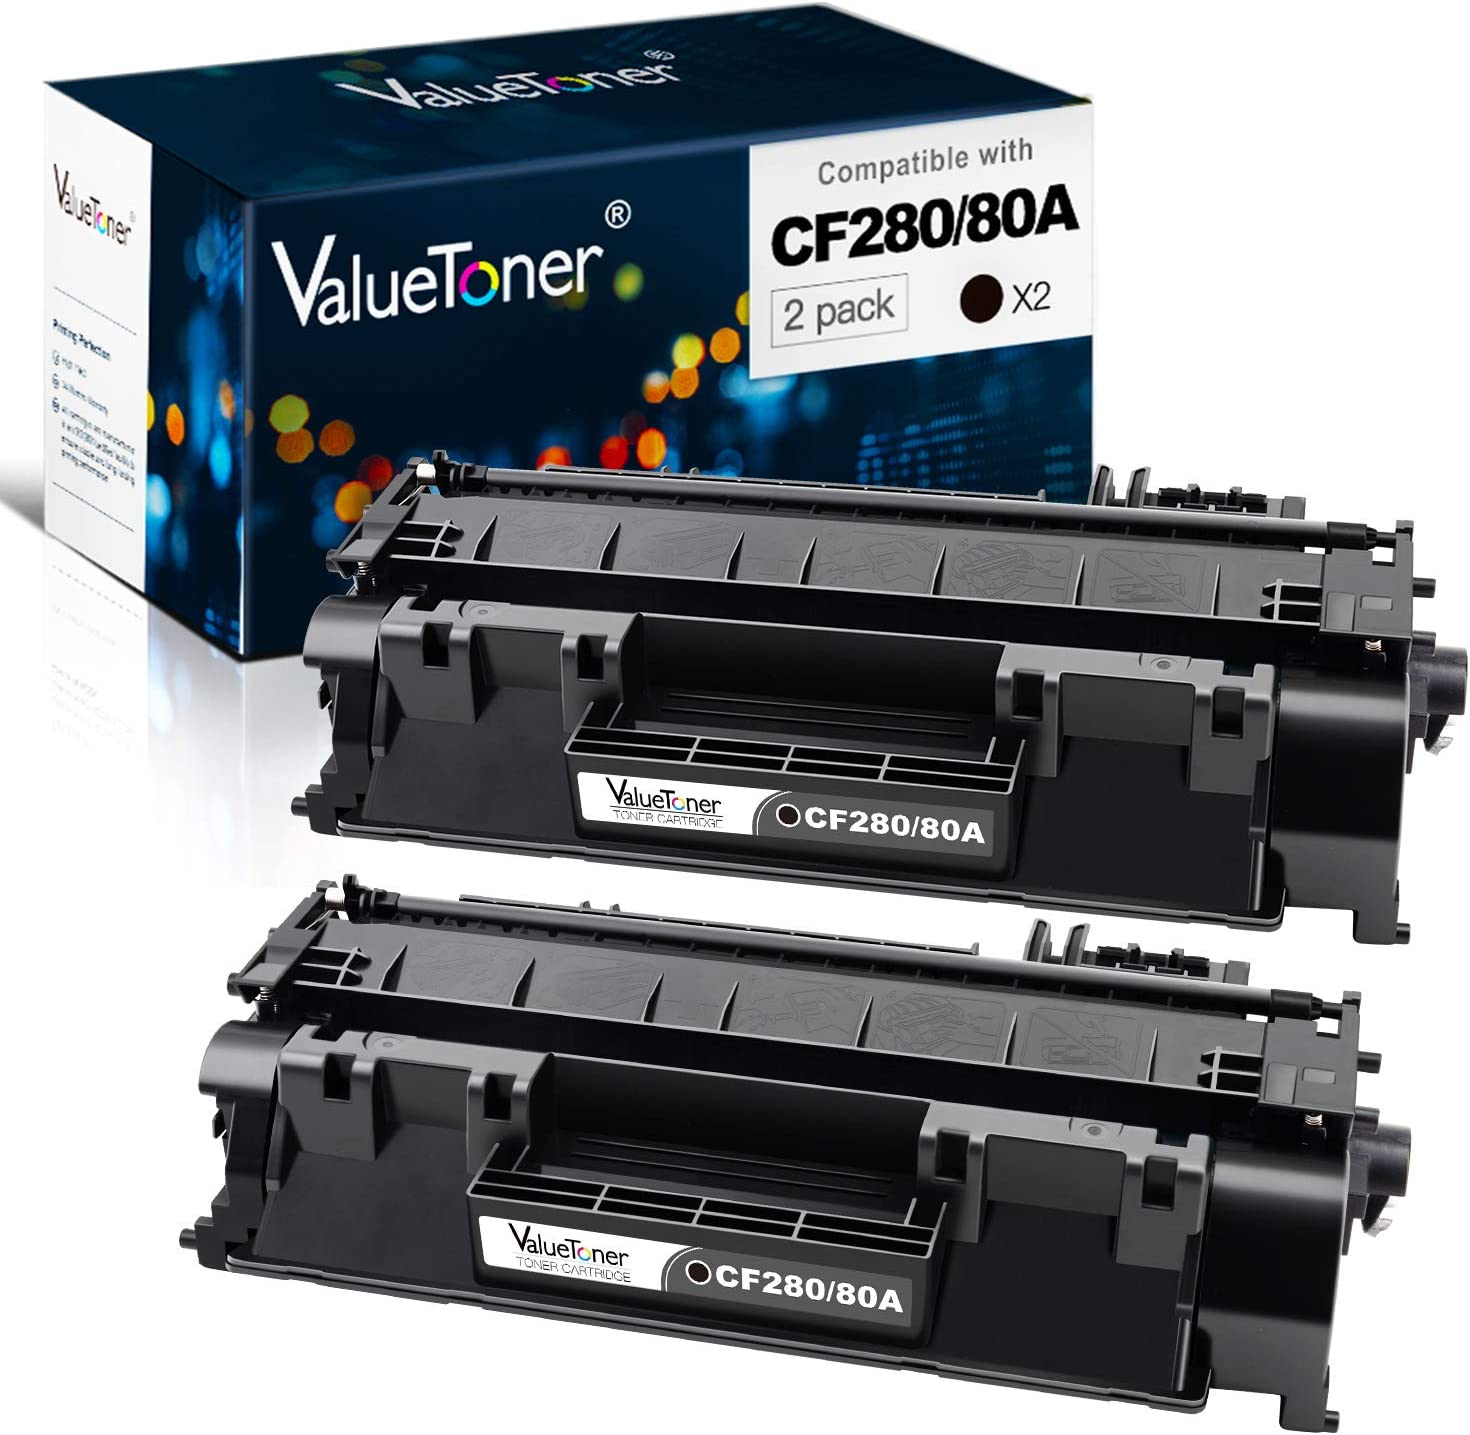 Valuetoner Compatible Toner Cartridge Replacement for HP 80A CF280A 05A CE505A to use with Laserjet Pro 400 M401n, M401dn, M401dne, MFP M425dn, M425dw,Laserjet P2055DN Printer (2 Black)